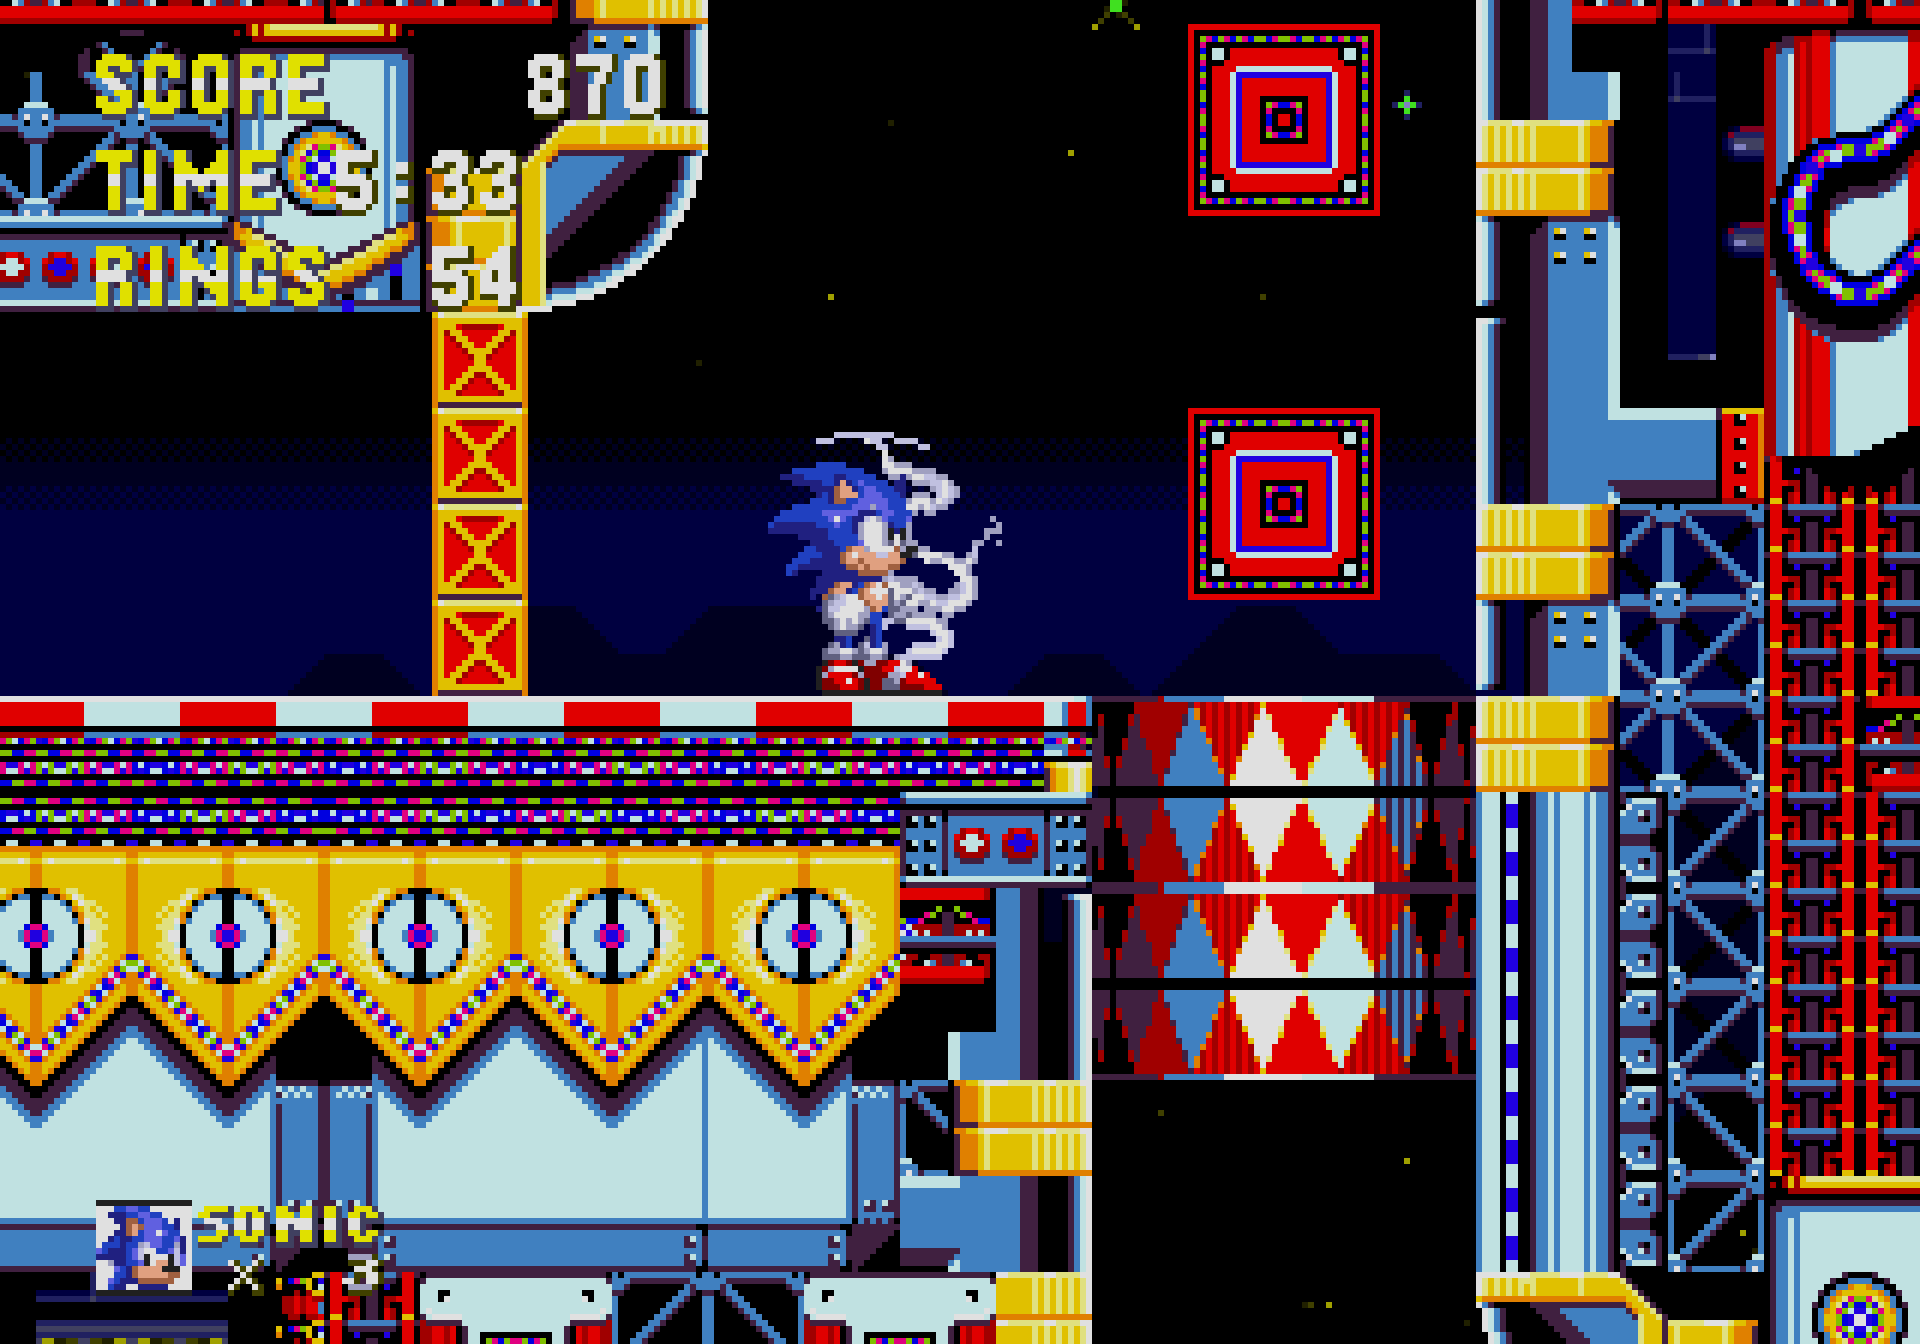 The barrel of doom in Carnival Night Zone, Act 2.